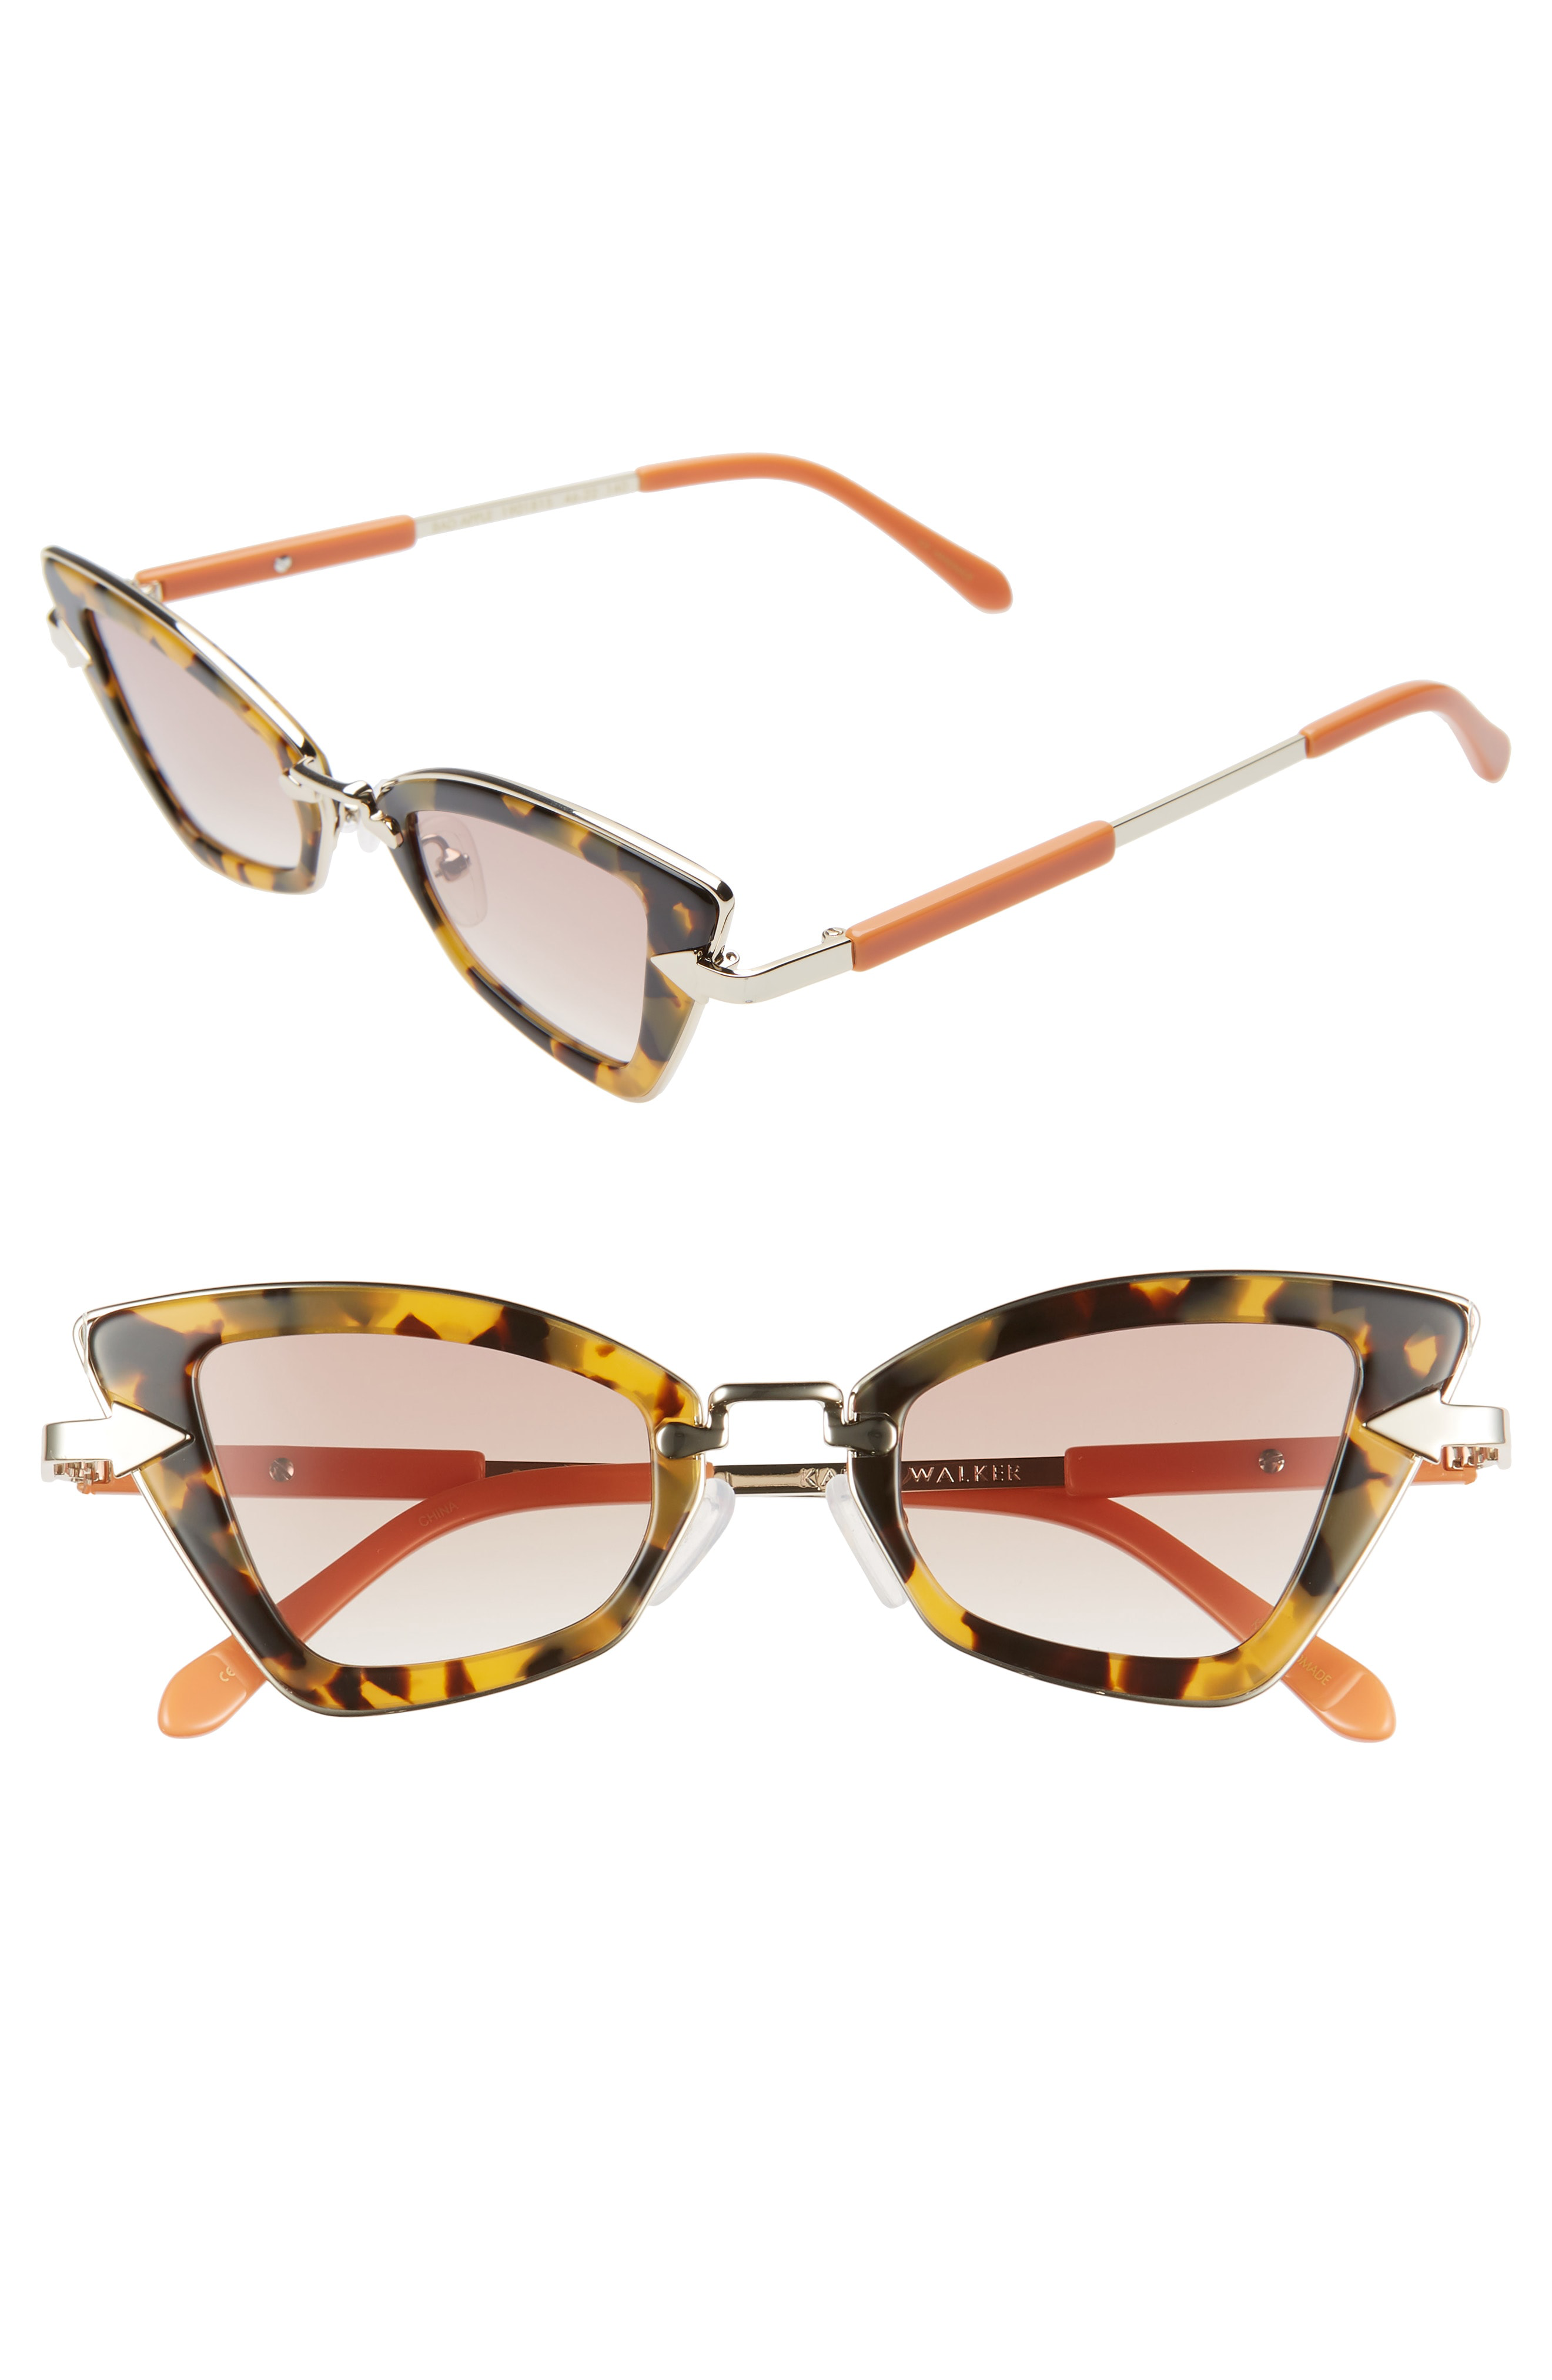 5d6cf79777b4 Karen Walker Bad Apple 46Mm Cat Eye Sunglasses - Crazy Tortoise  Brown  Gradient